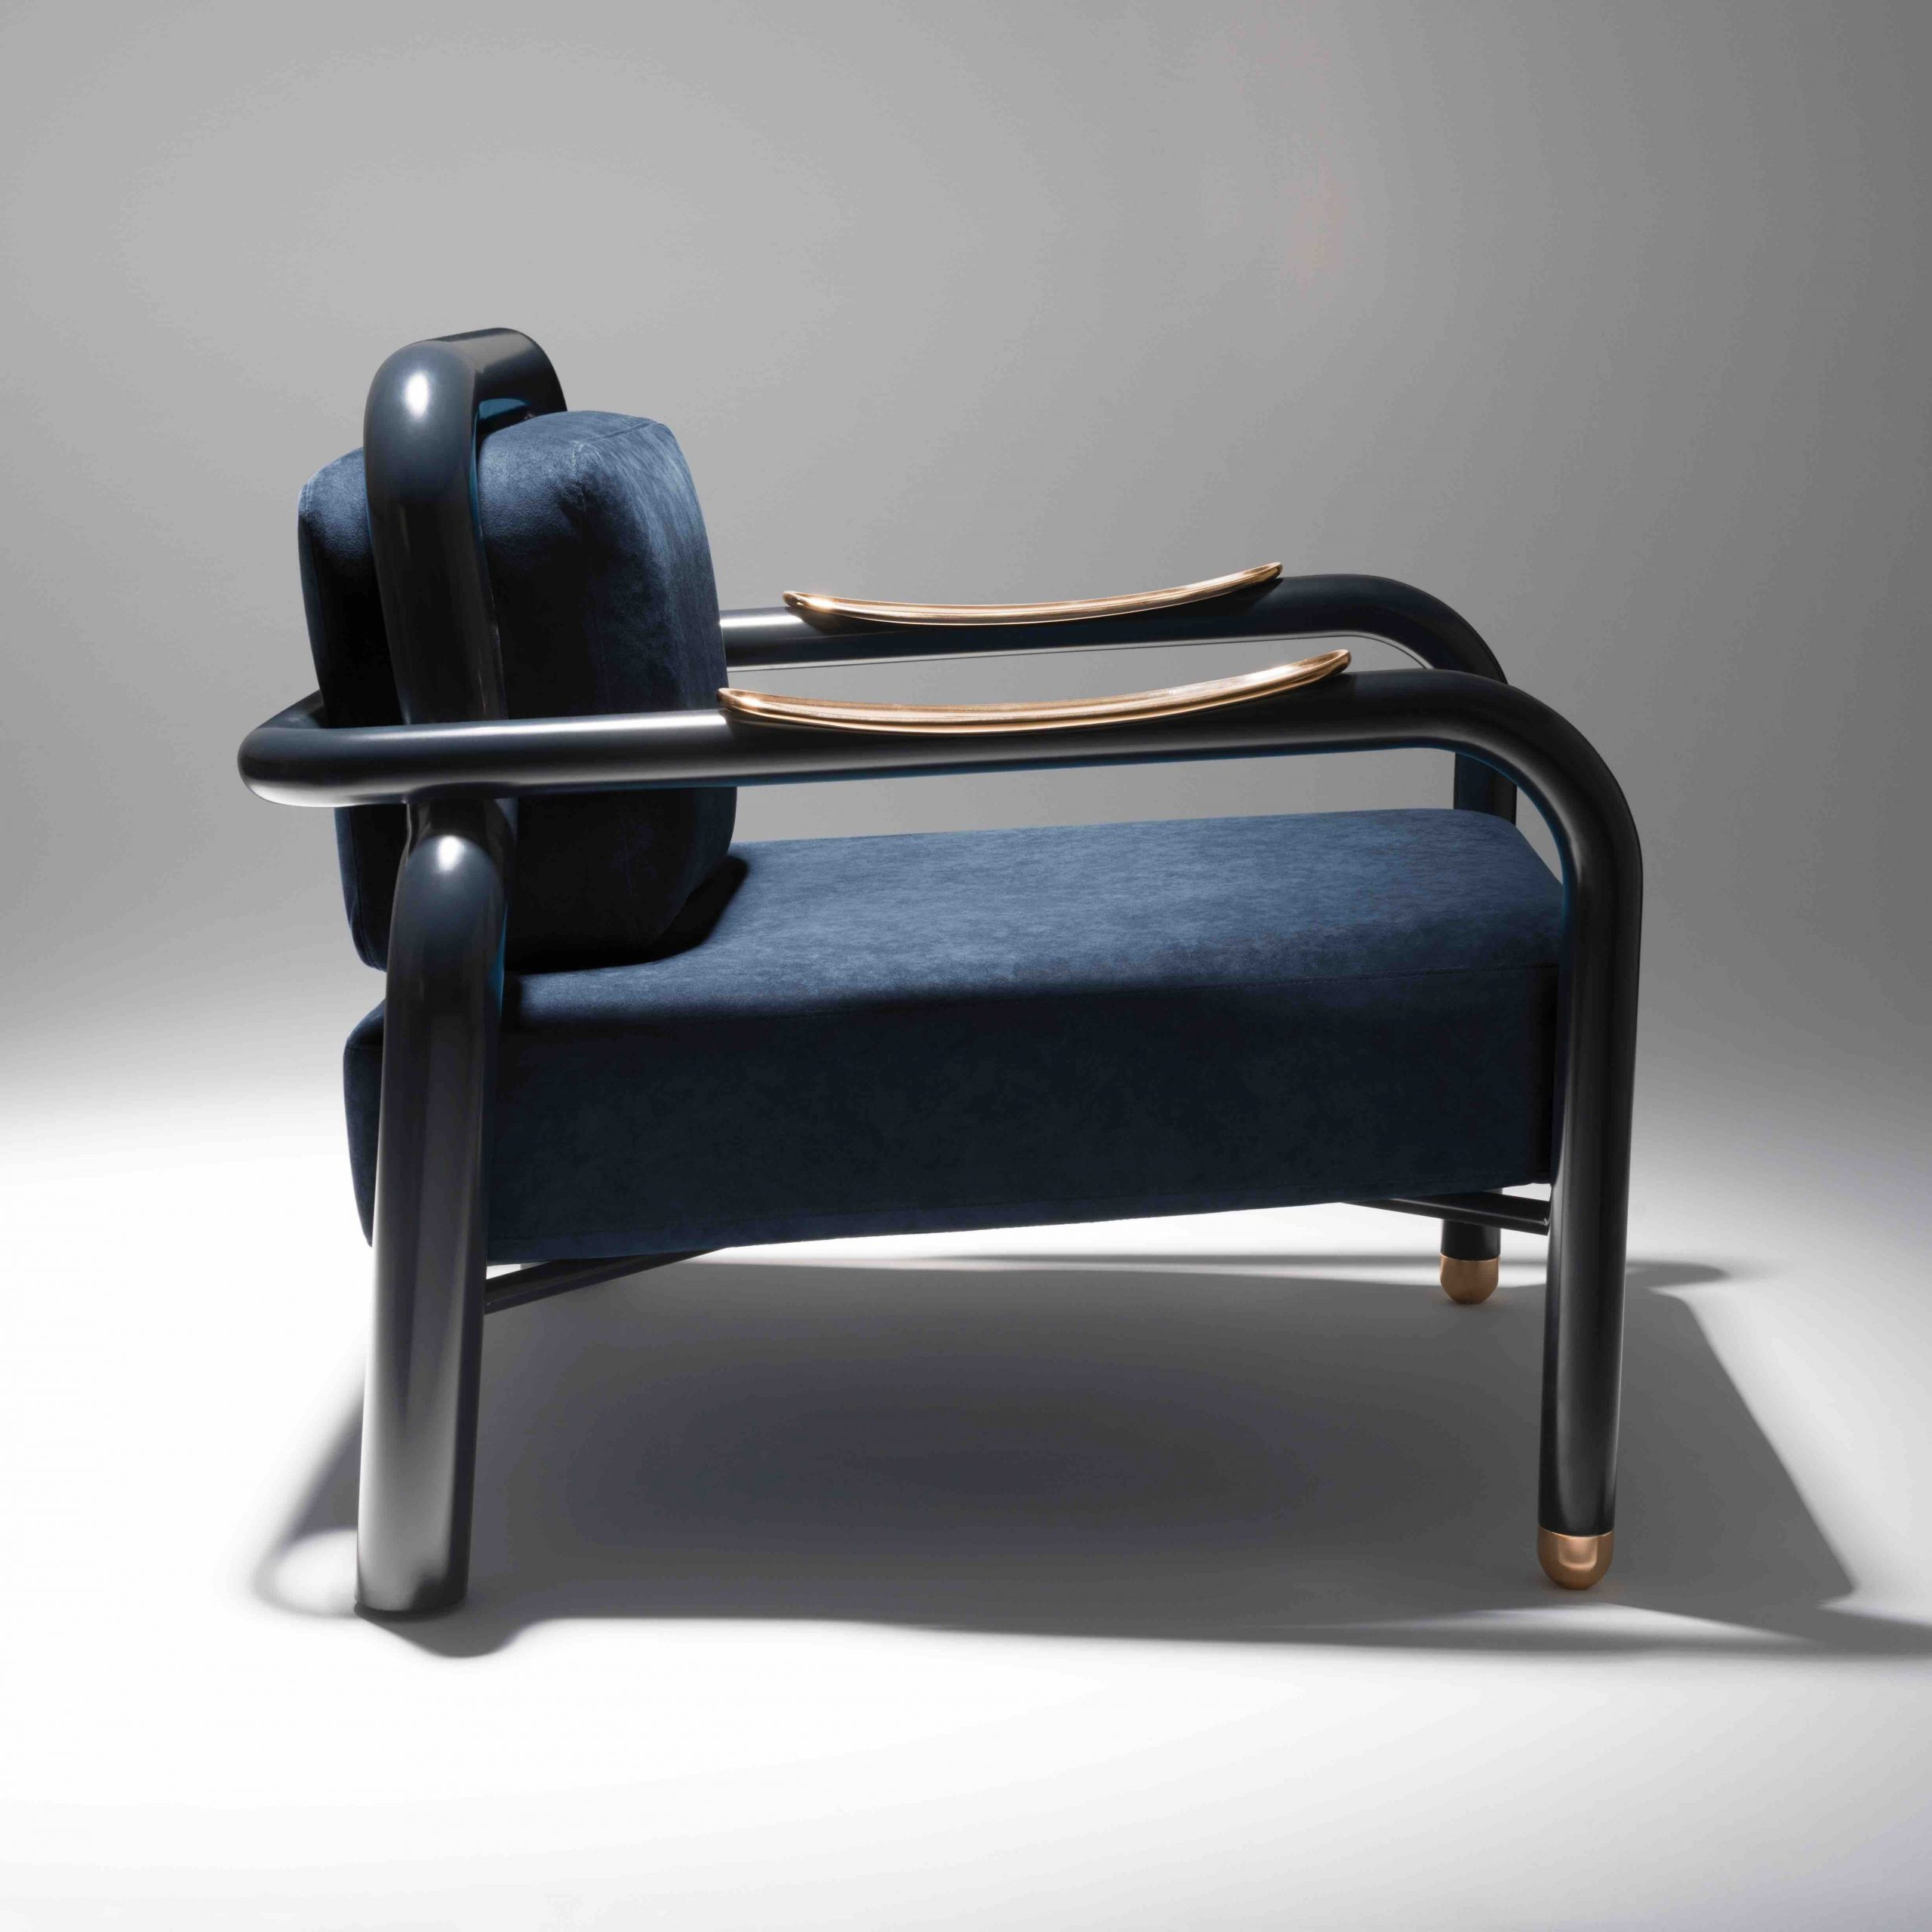 Kayak / Lacquered Steel, Polished Bronze And Alcantara Intended For 2019 Harmoni Armchairs (View 6 of 20)